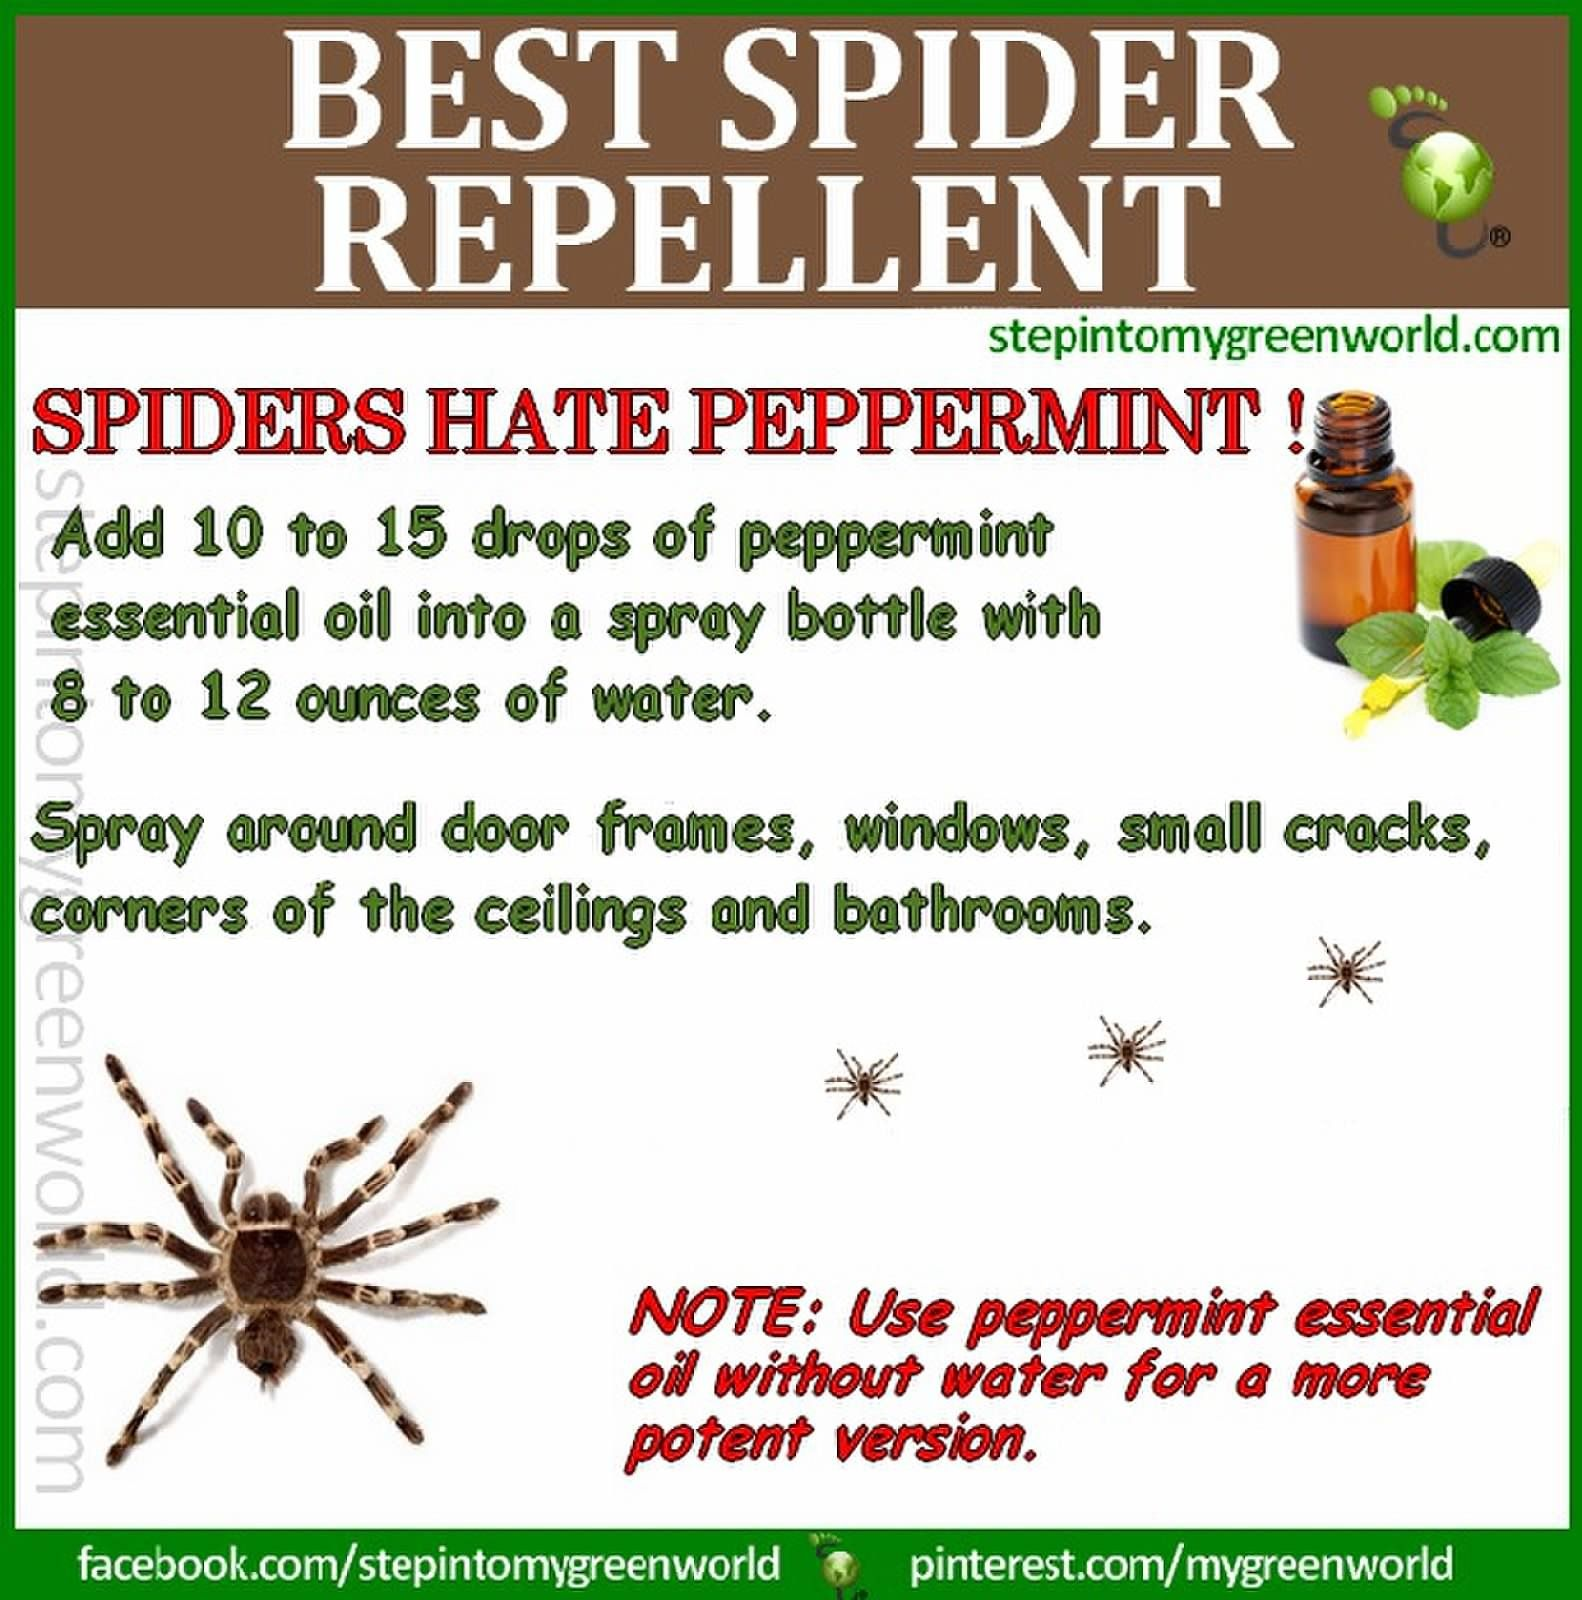 Pin By Debbie E On Backyard Bliss Spiders Repellent Repellent Natural Spider Repellant